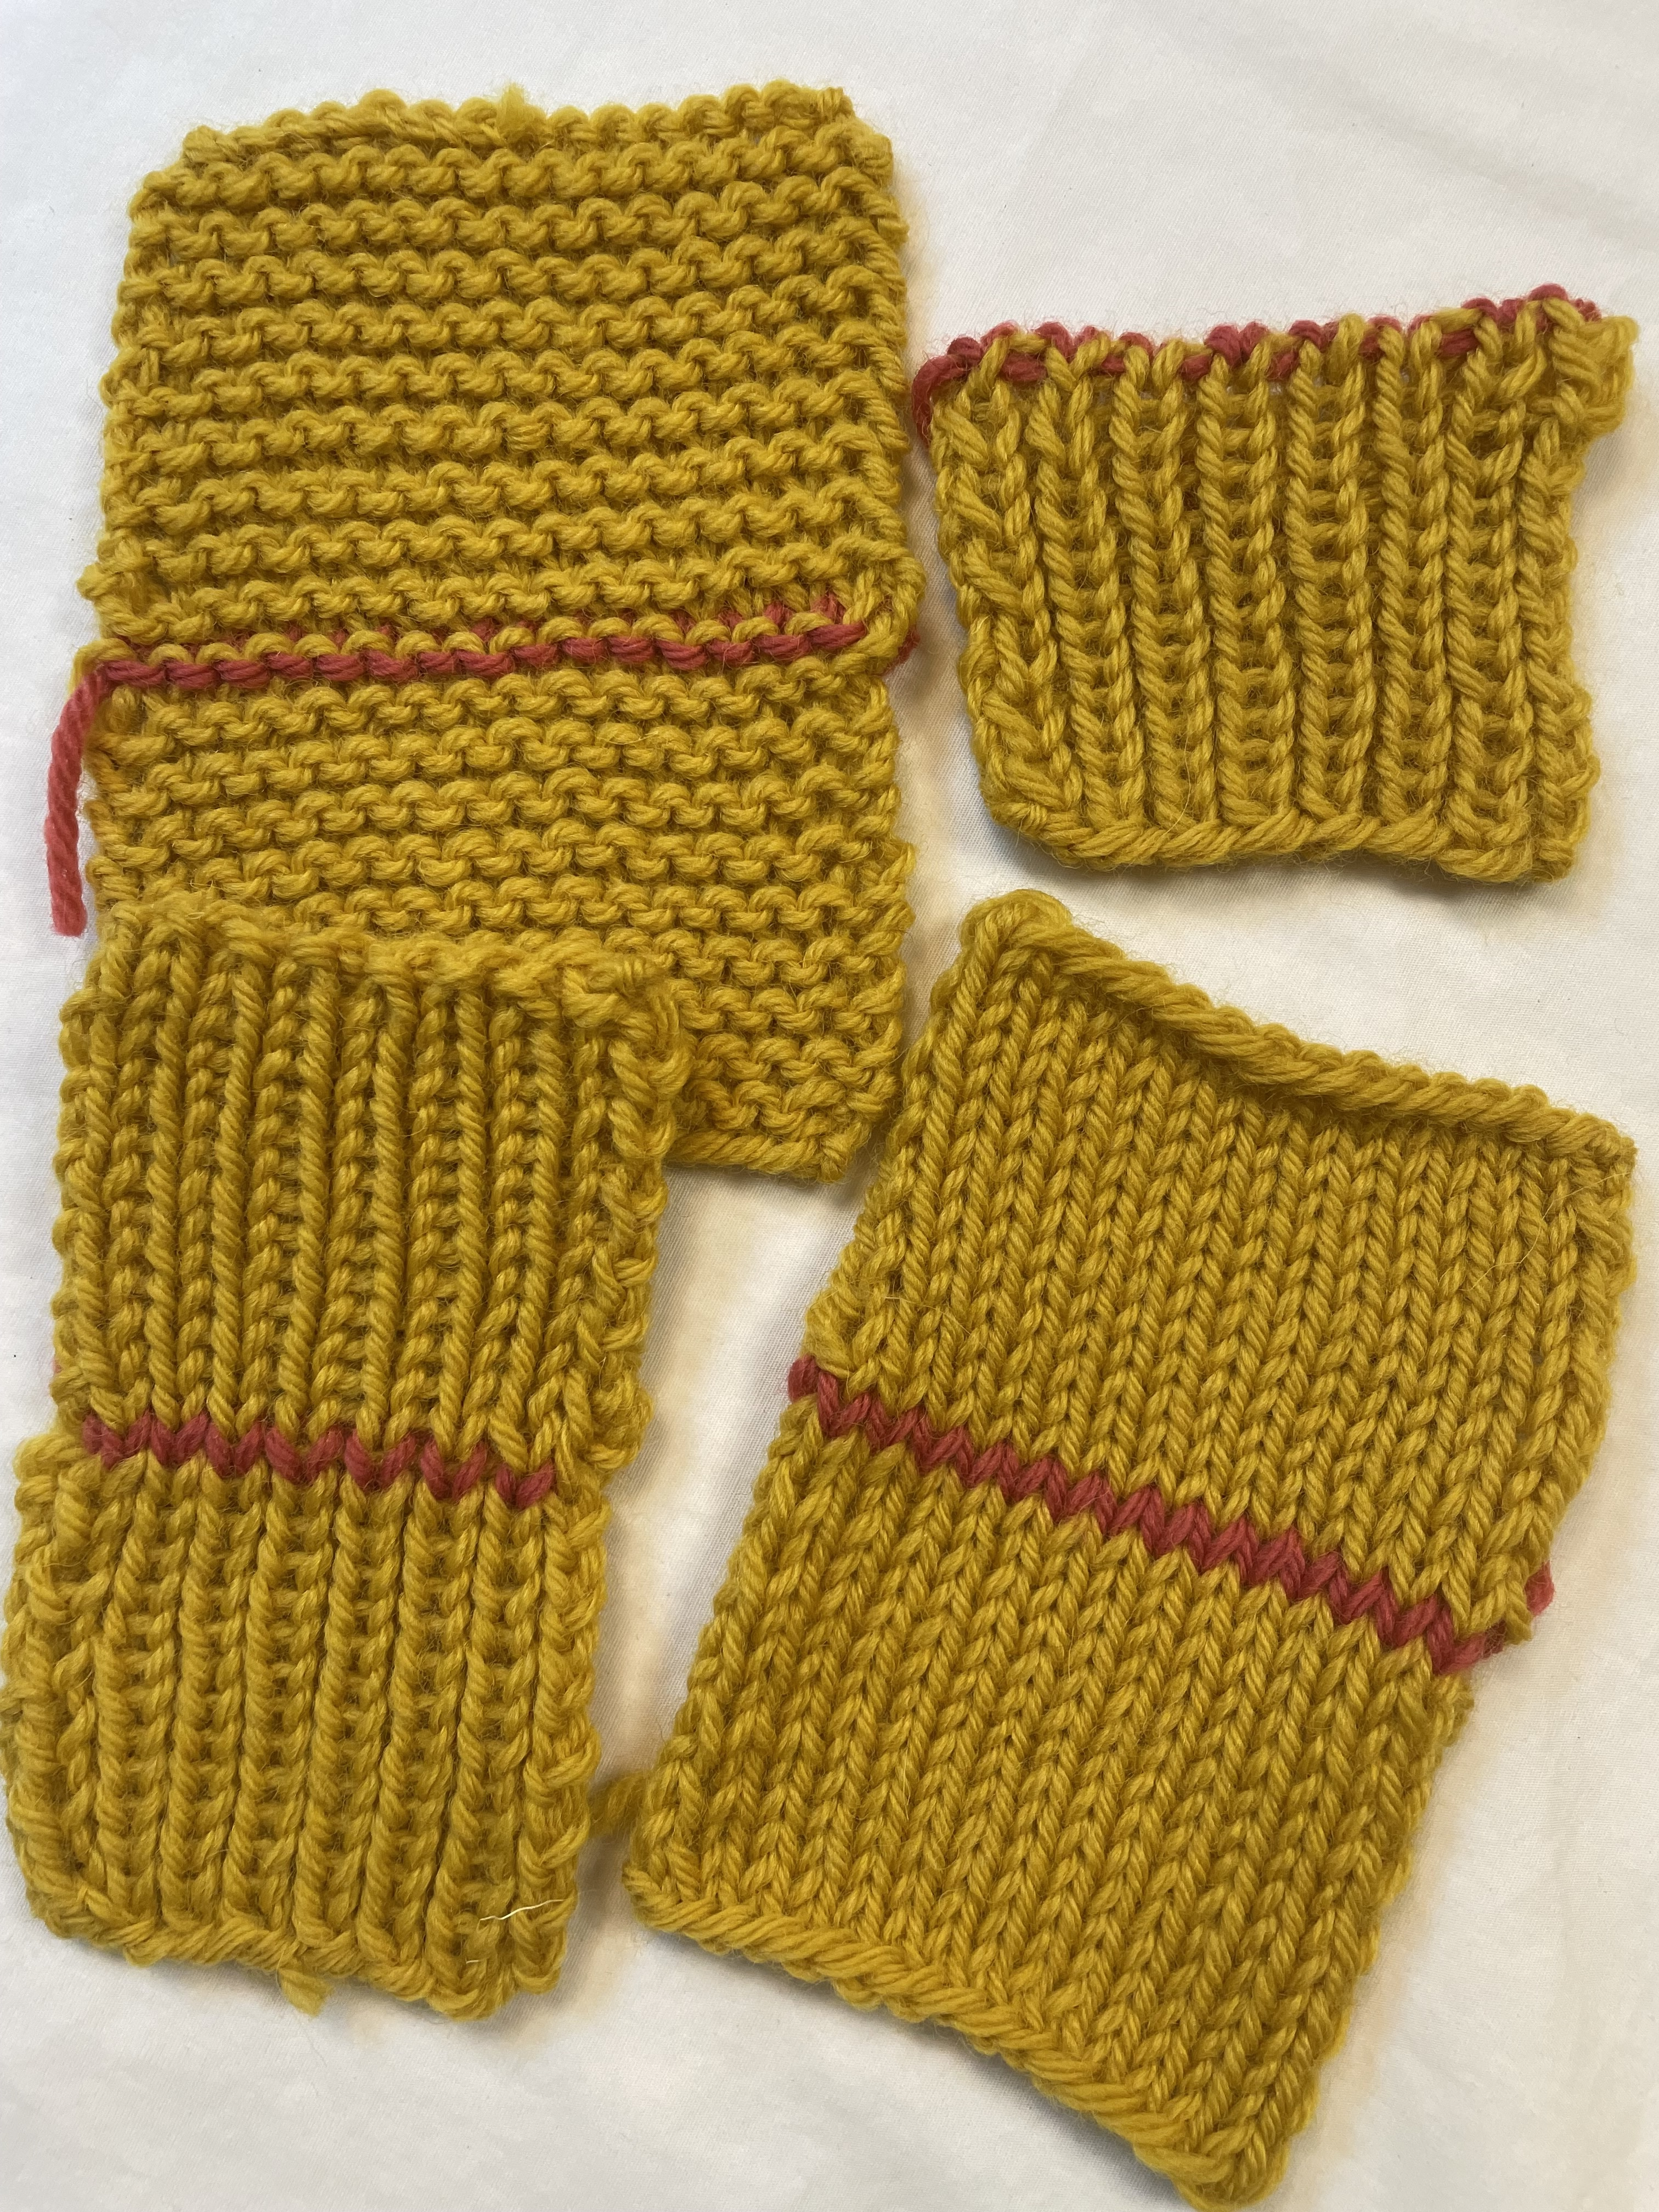 Conquering Many Forms of Kitchener Stitch